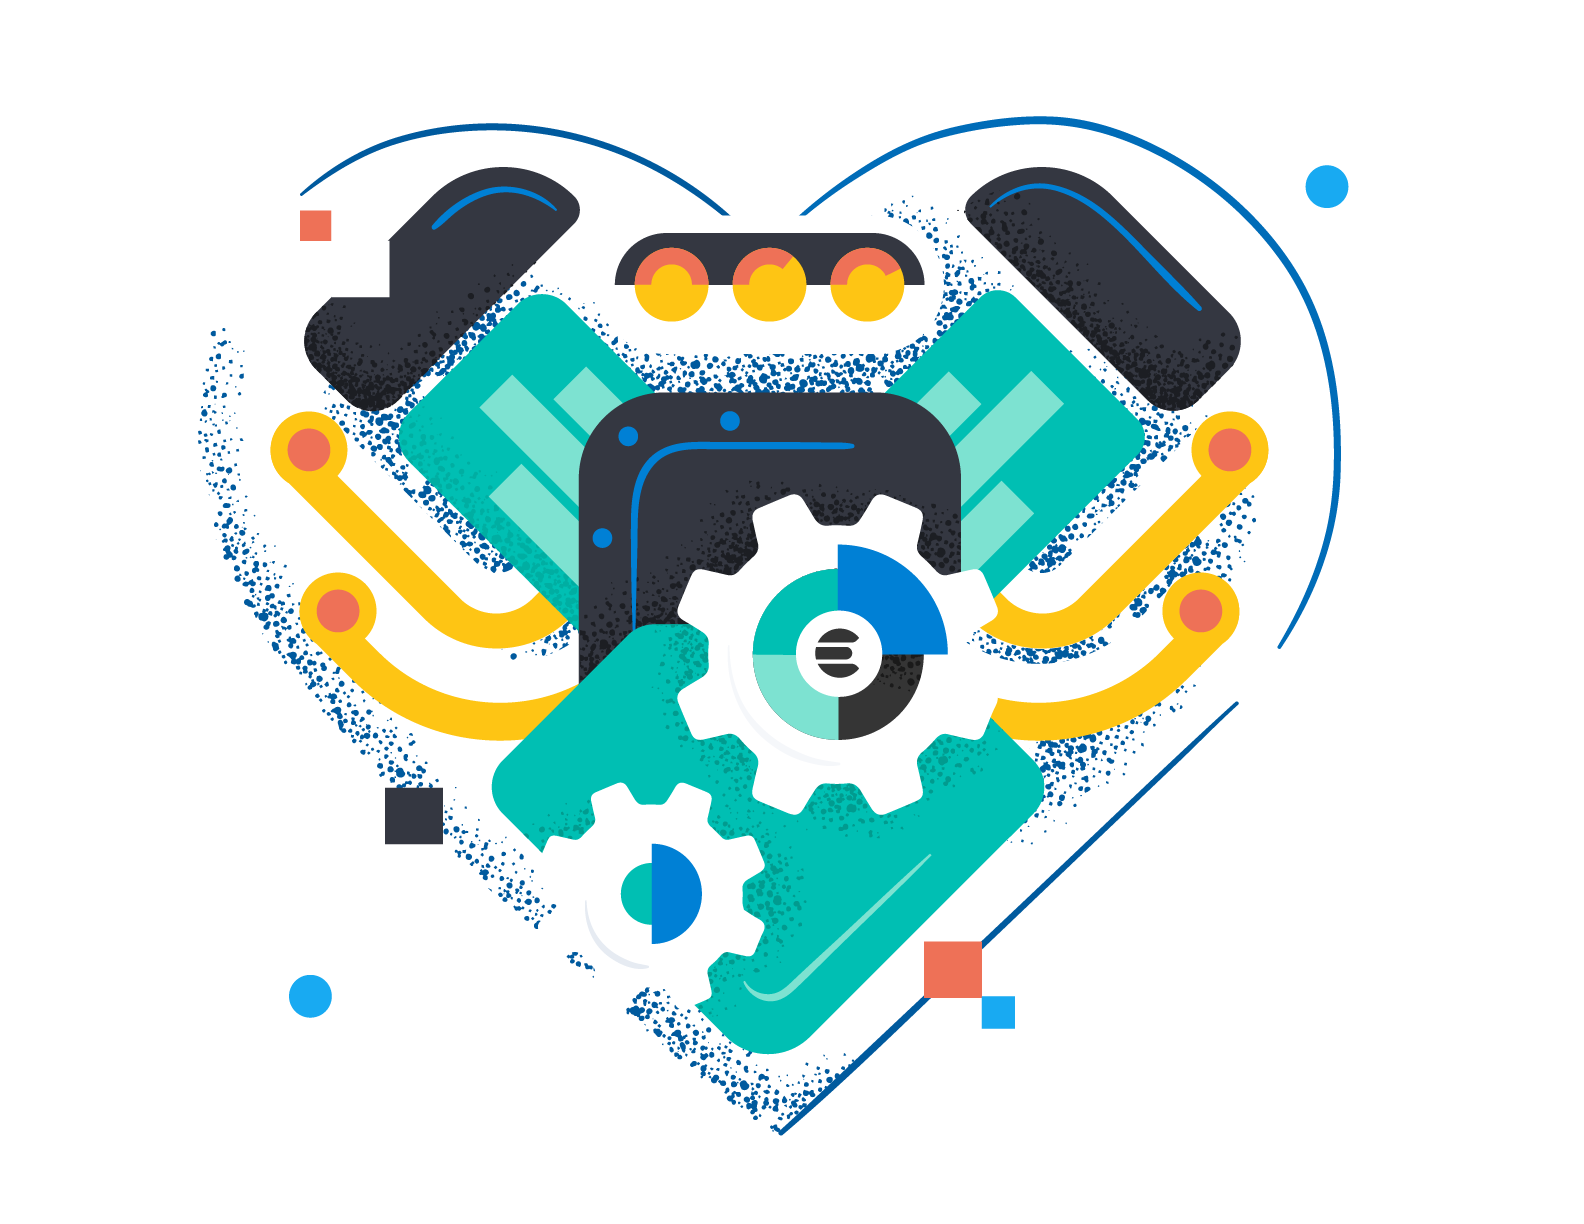 illustration-elasticsearch-heart.png